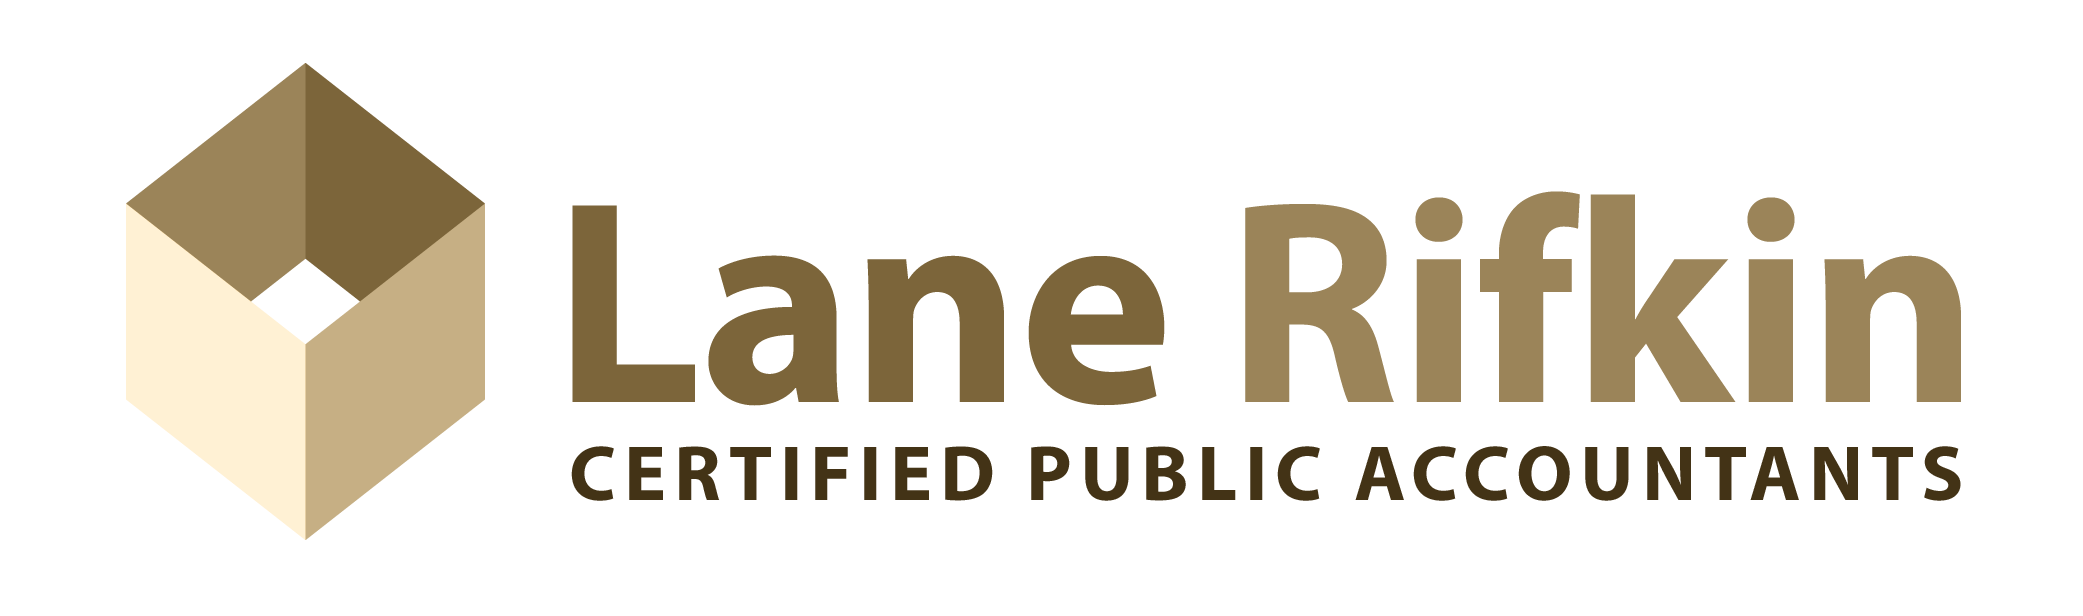 Derry, NH Certified Public Accountants Firm | Non-Filed Tax Returns Page | Lane Rifkin, PLLC